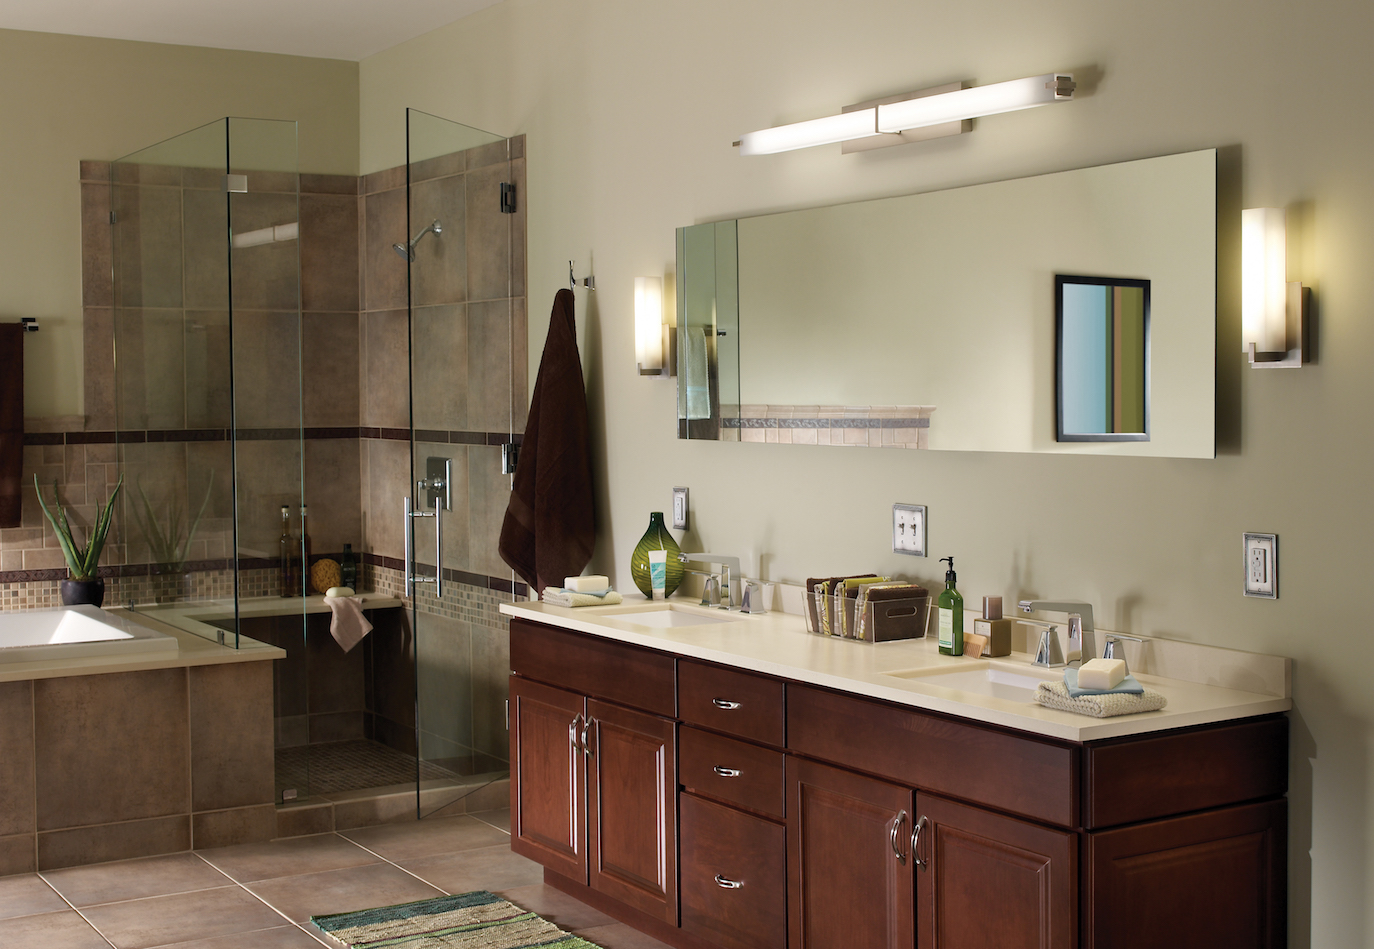 Bathroom lighting ideas east pierce chamber bathroom lighting ideas aloadofball Gallery